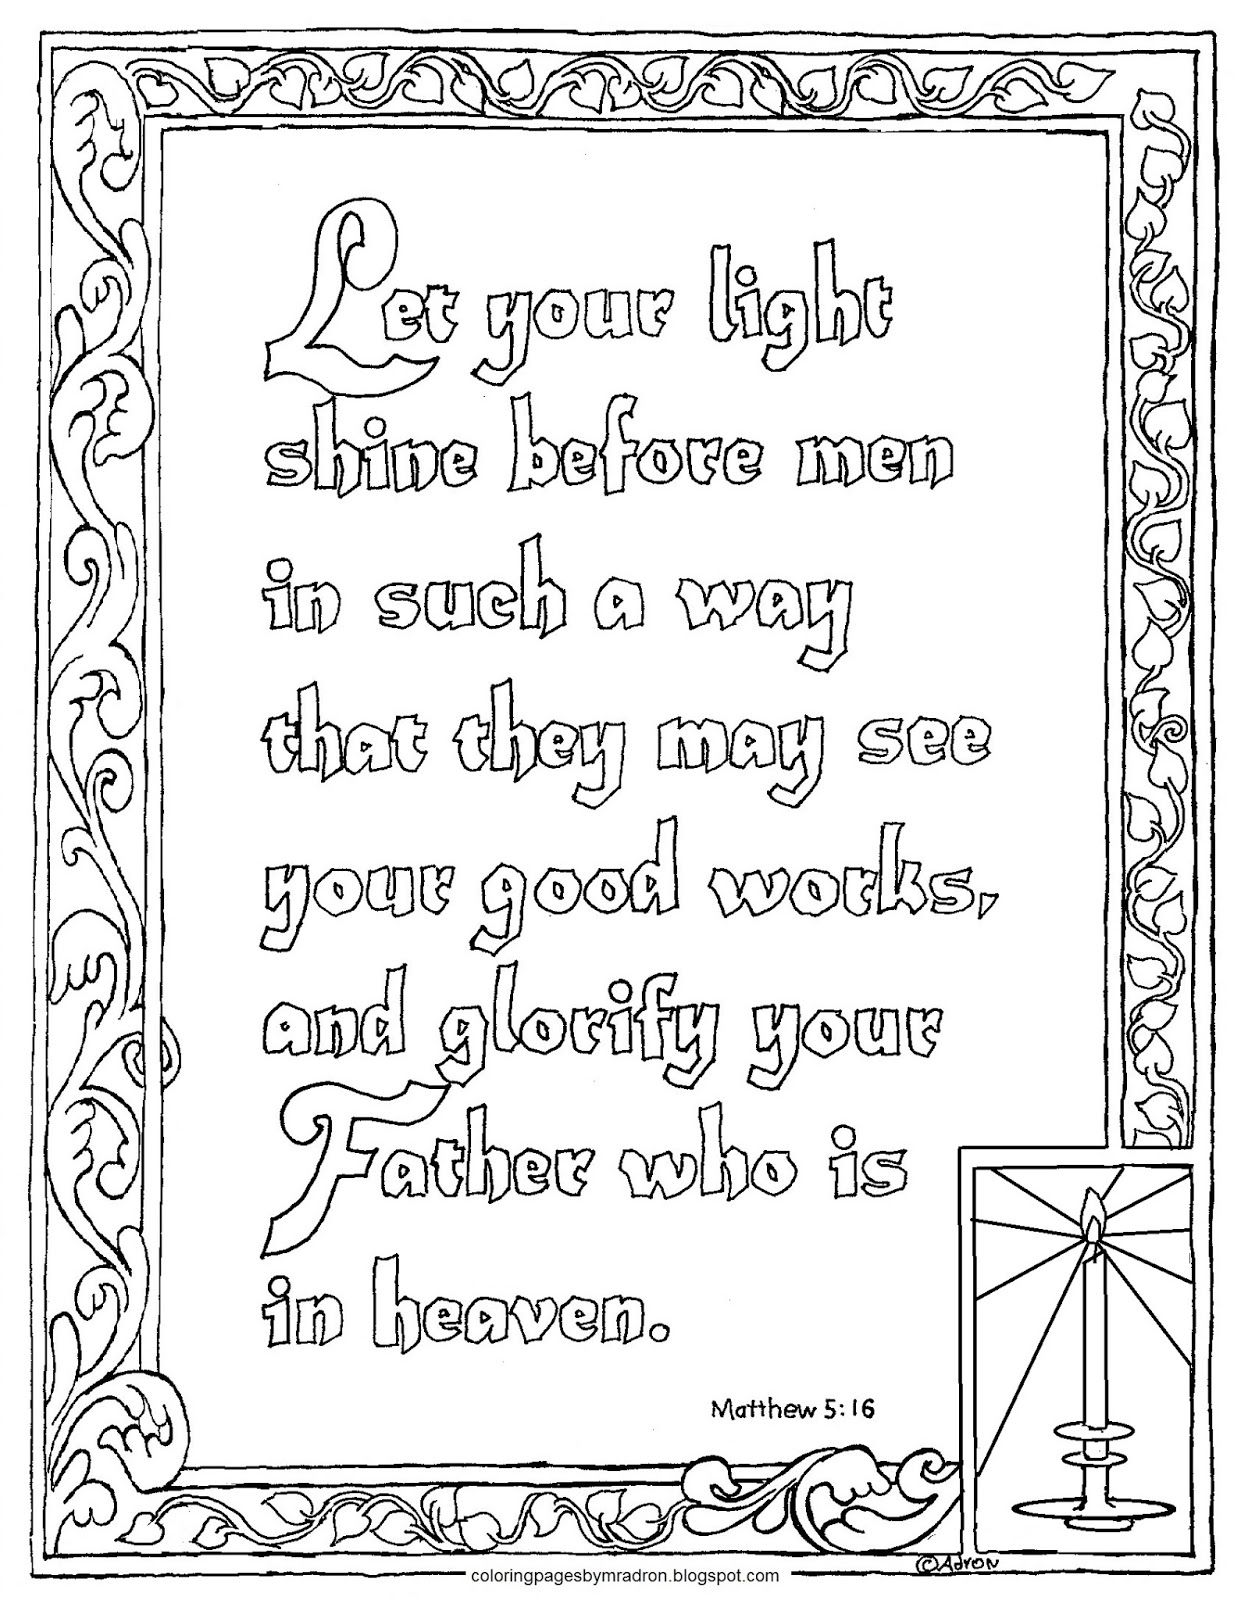 This printable coloring page is for children and adults too it is a favorite verse from the sermon on the mount it has inspired and cha